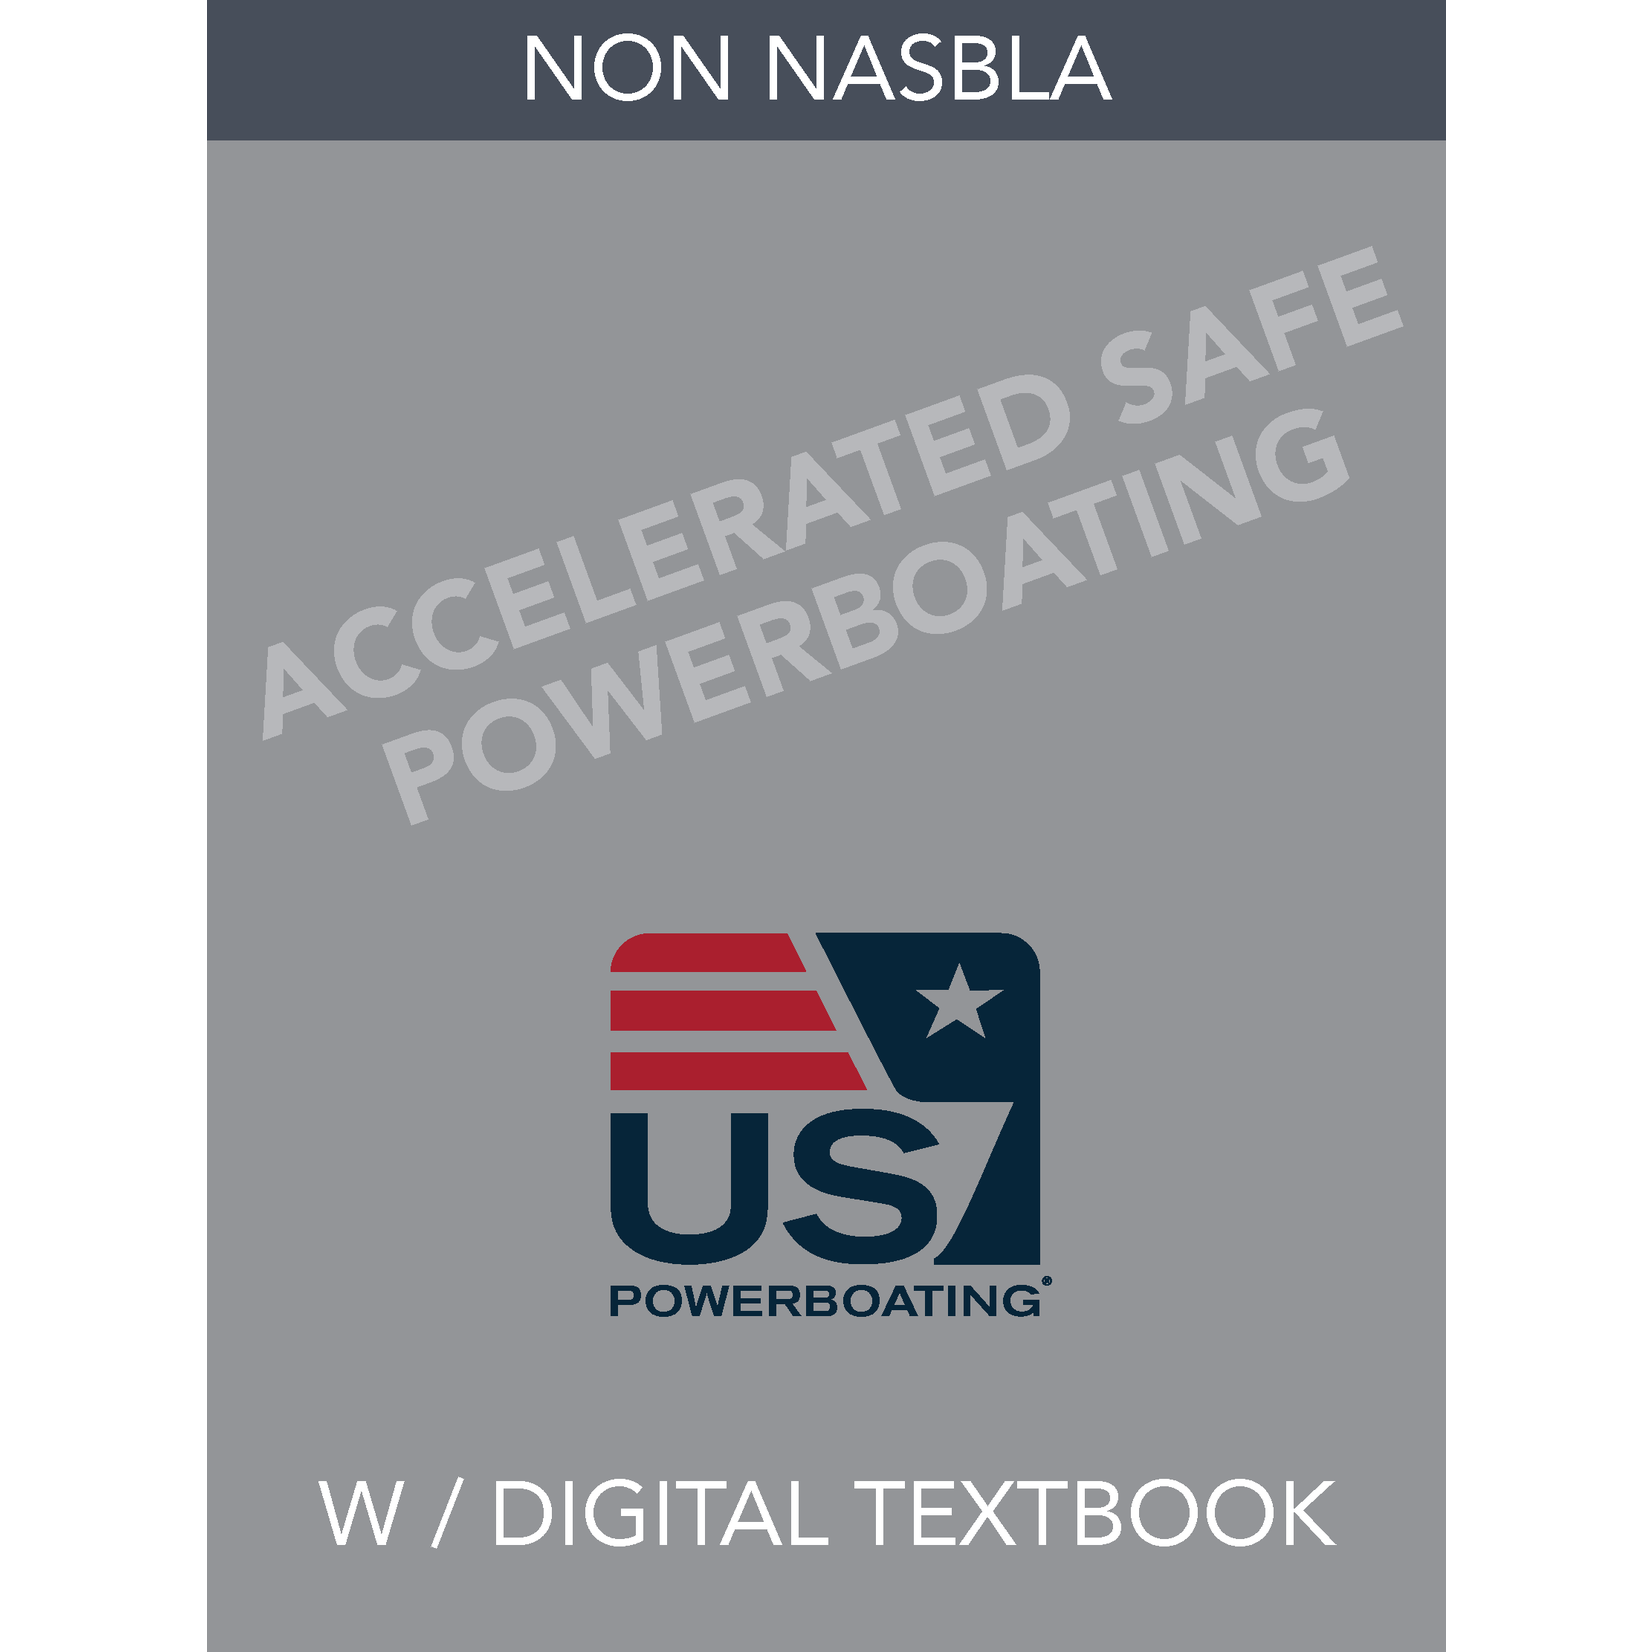 Non NASBLA Accelerated- Safe Powerboat Handling With Digital Textbook